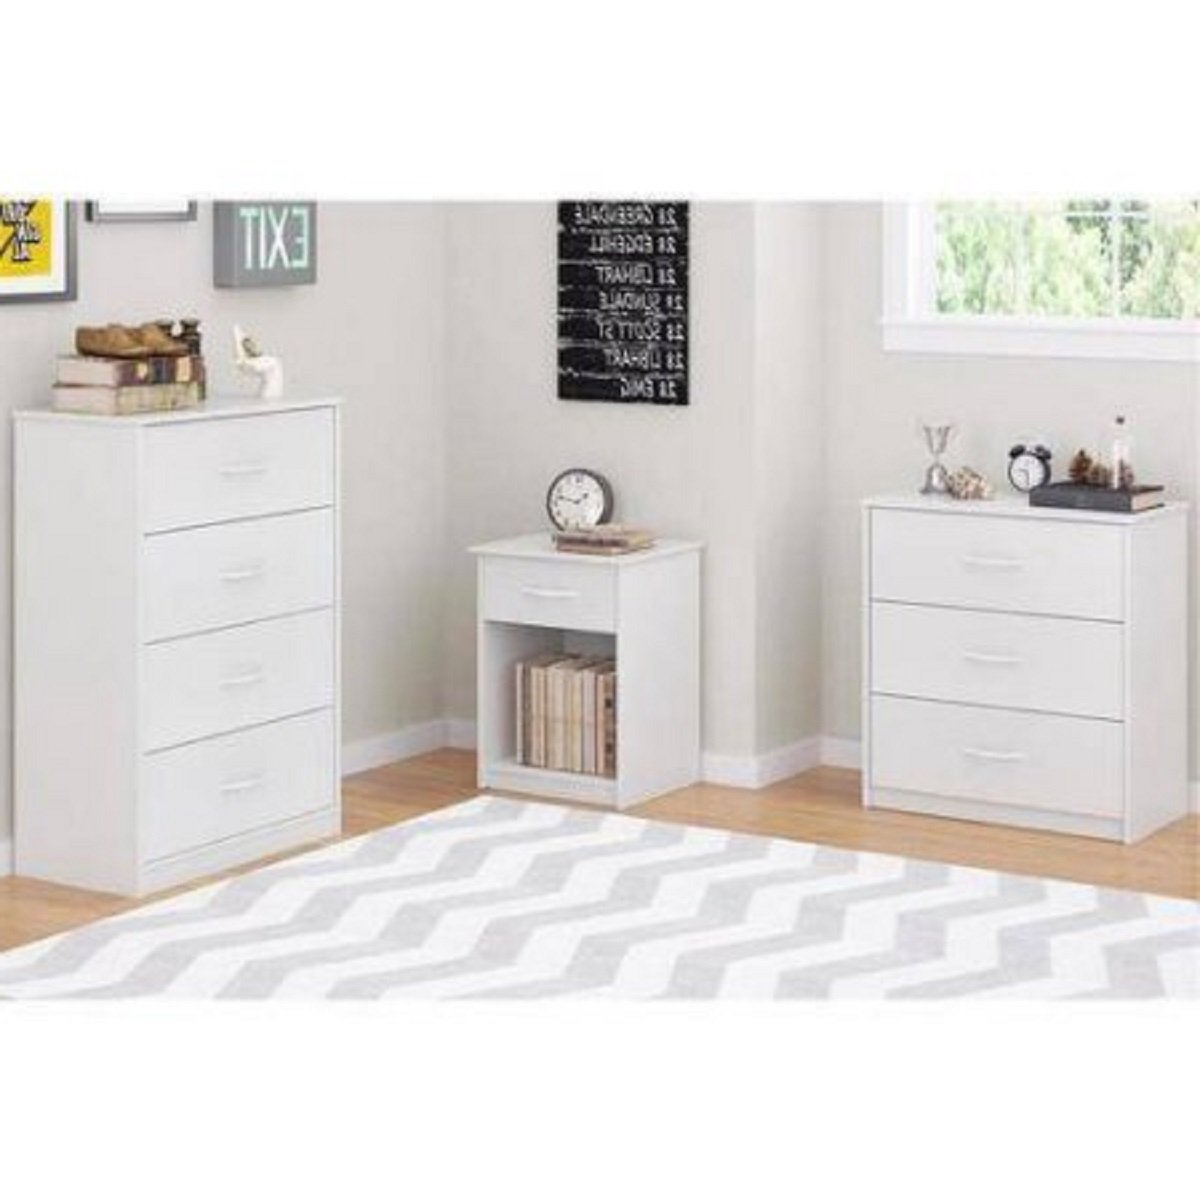 Mainstays 3-Drawer Dresser 3 easy-glide drawers (White) by Mainstay* (Image #4)